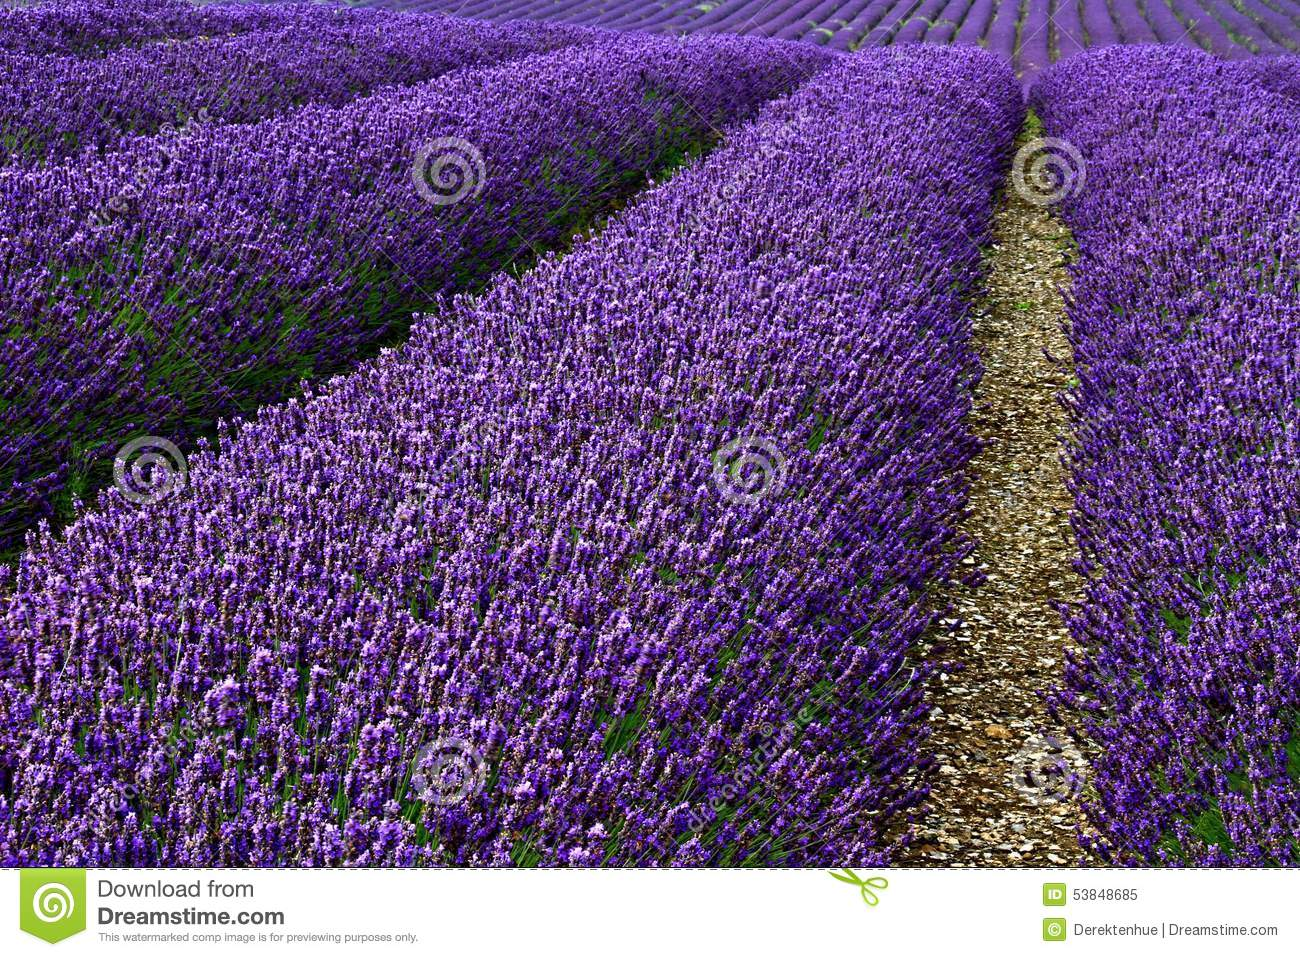 Lavender farm business plan